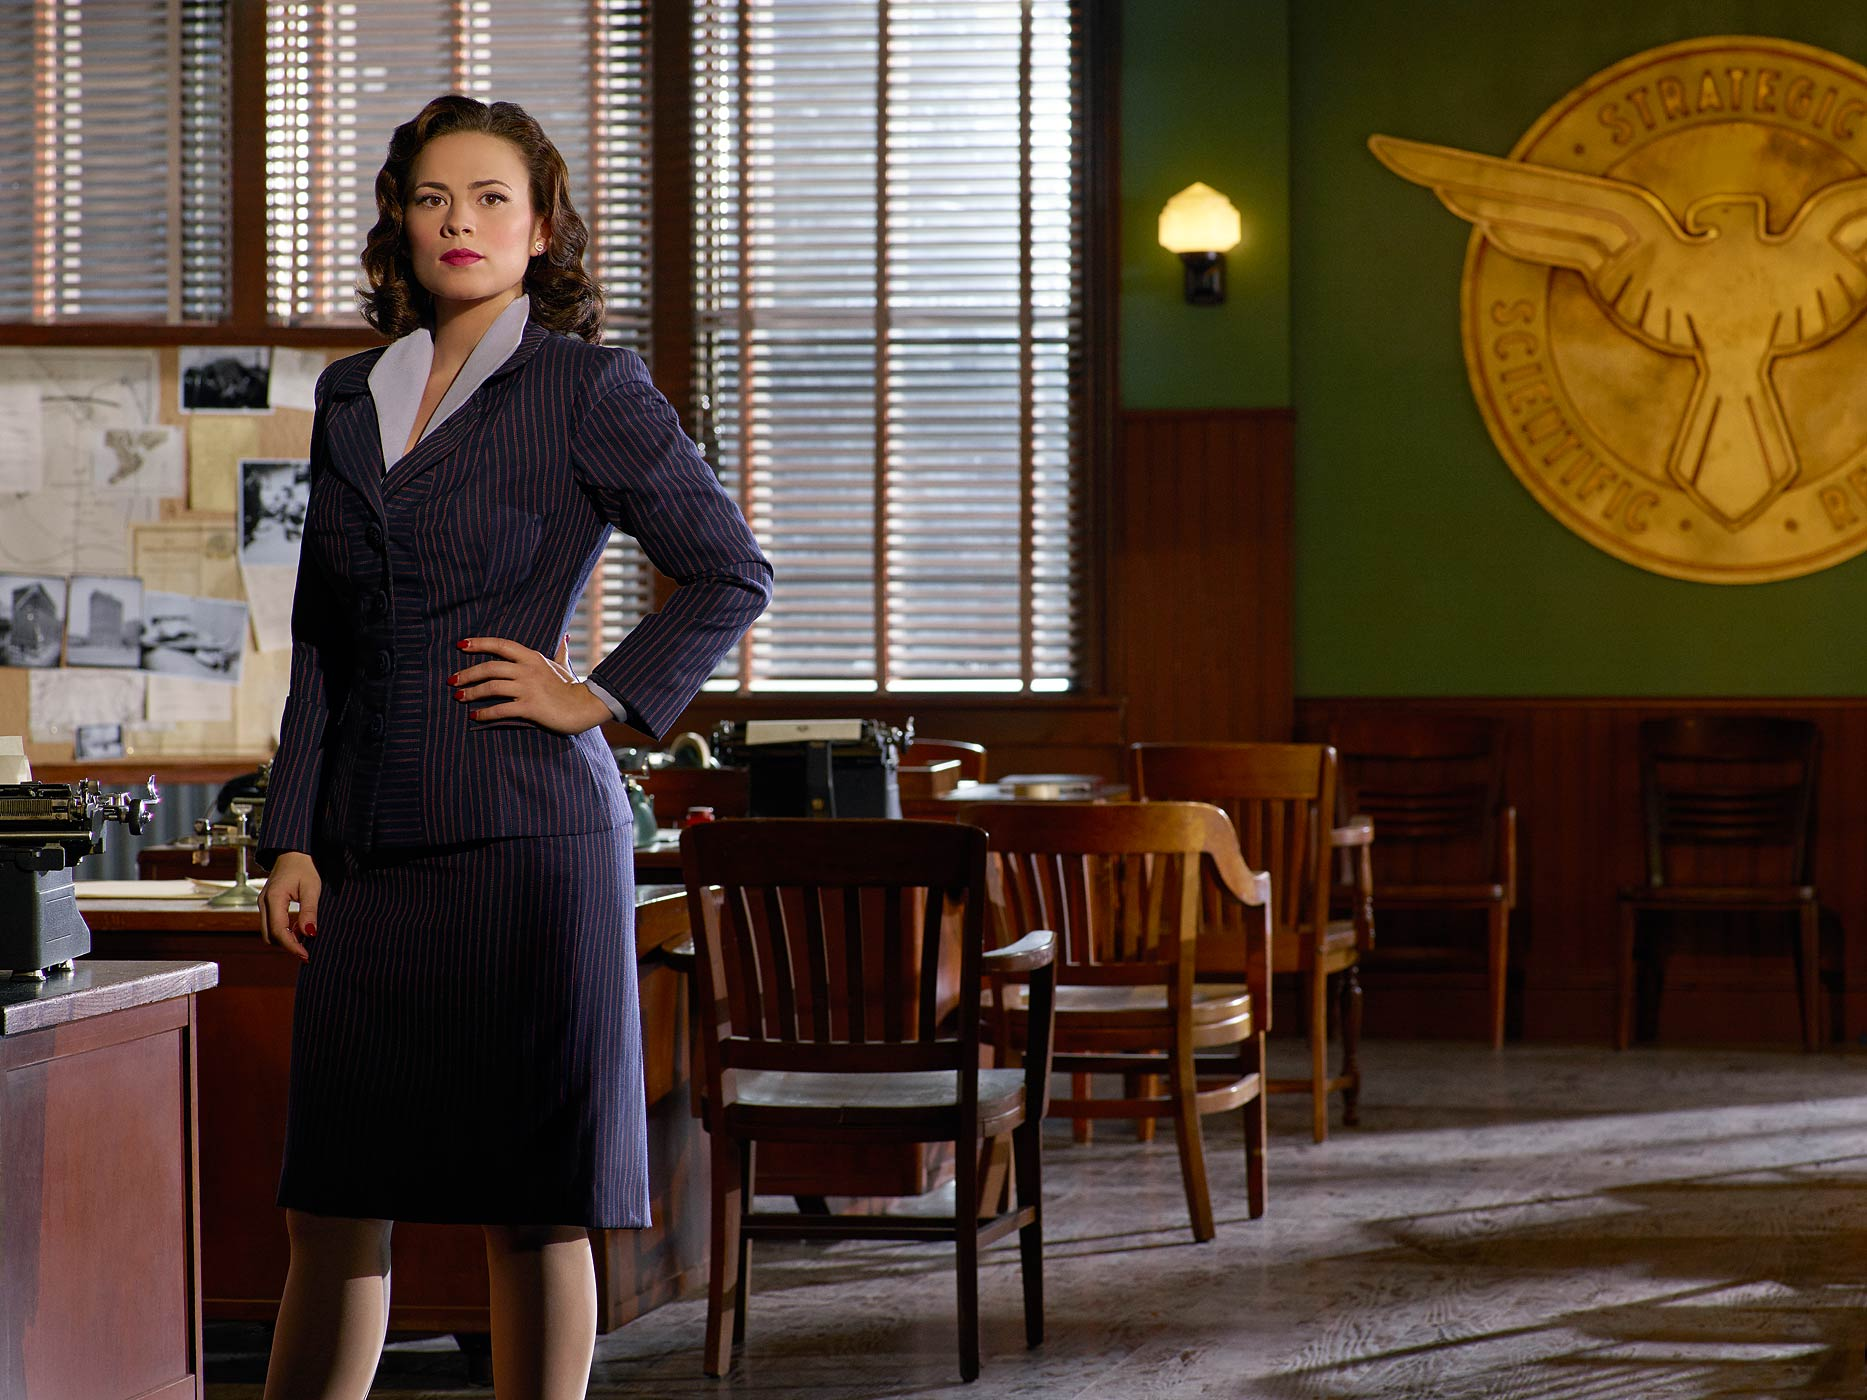 Hayley Atwell stars as Agent Peggy Carter in Agent Carter